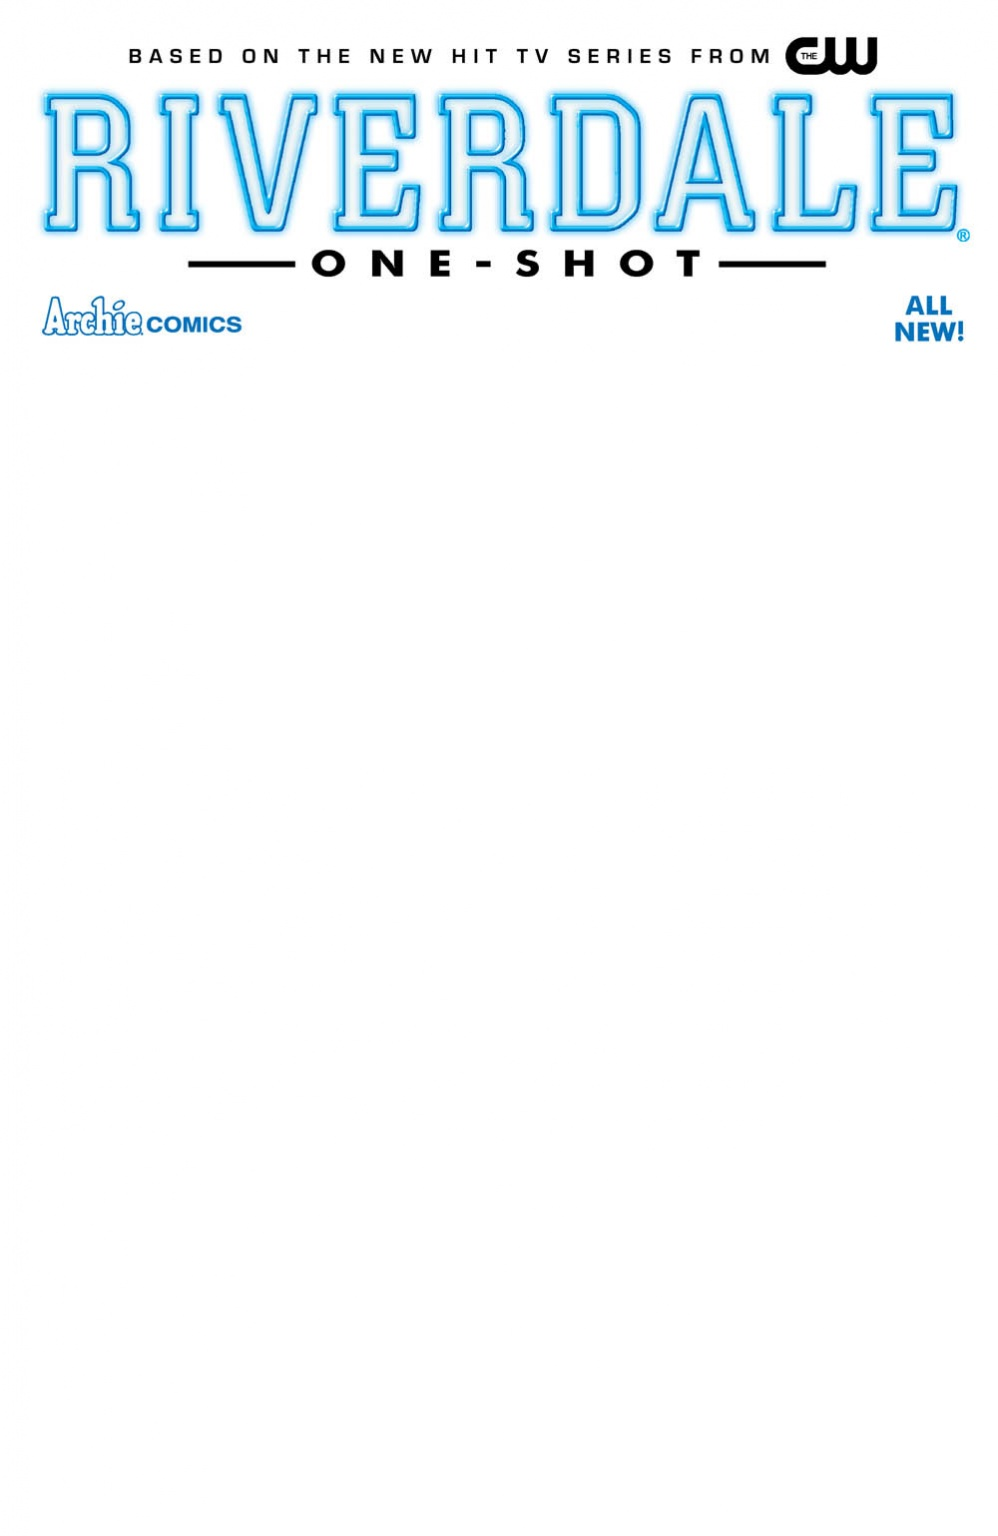 Riverdale One-Shot Cover 11